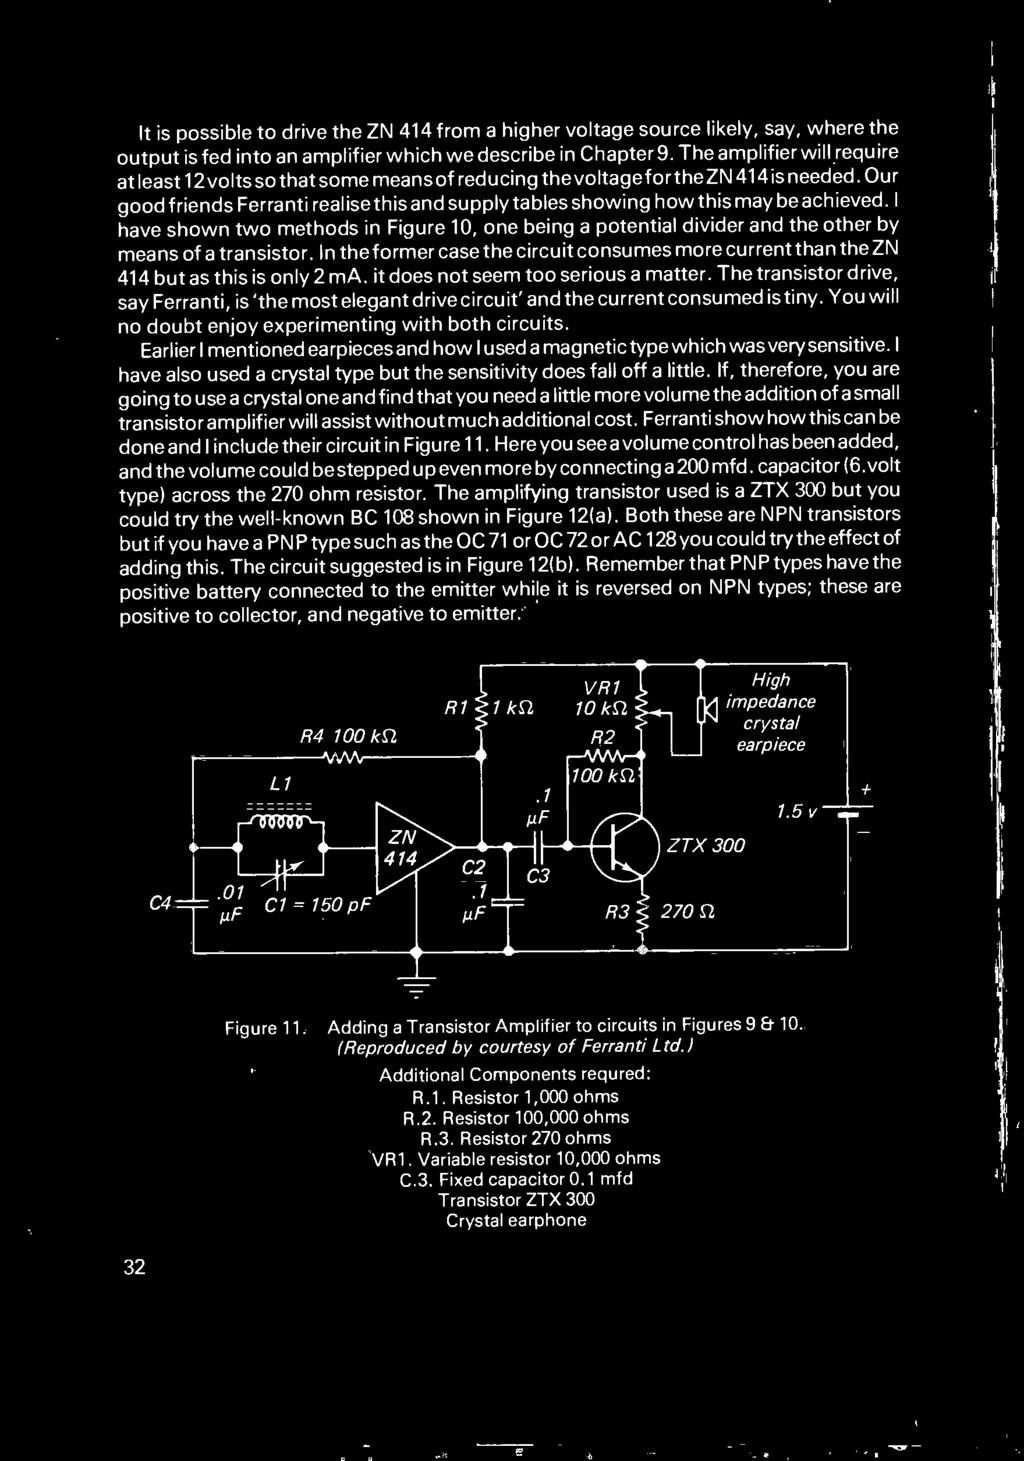 Fun With Silicon Chips In Modern Radio Pdf Zn414 Portable Am Receiver Circuit Our Good Friends Ferranti Realise This And Supply Tables Showing How May Be Achieved